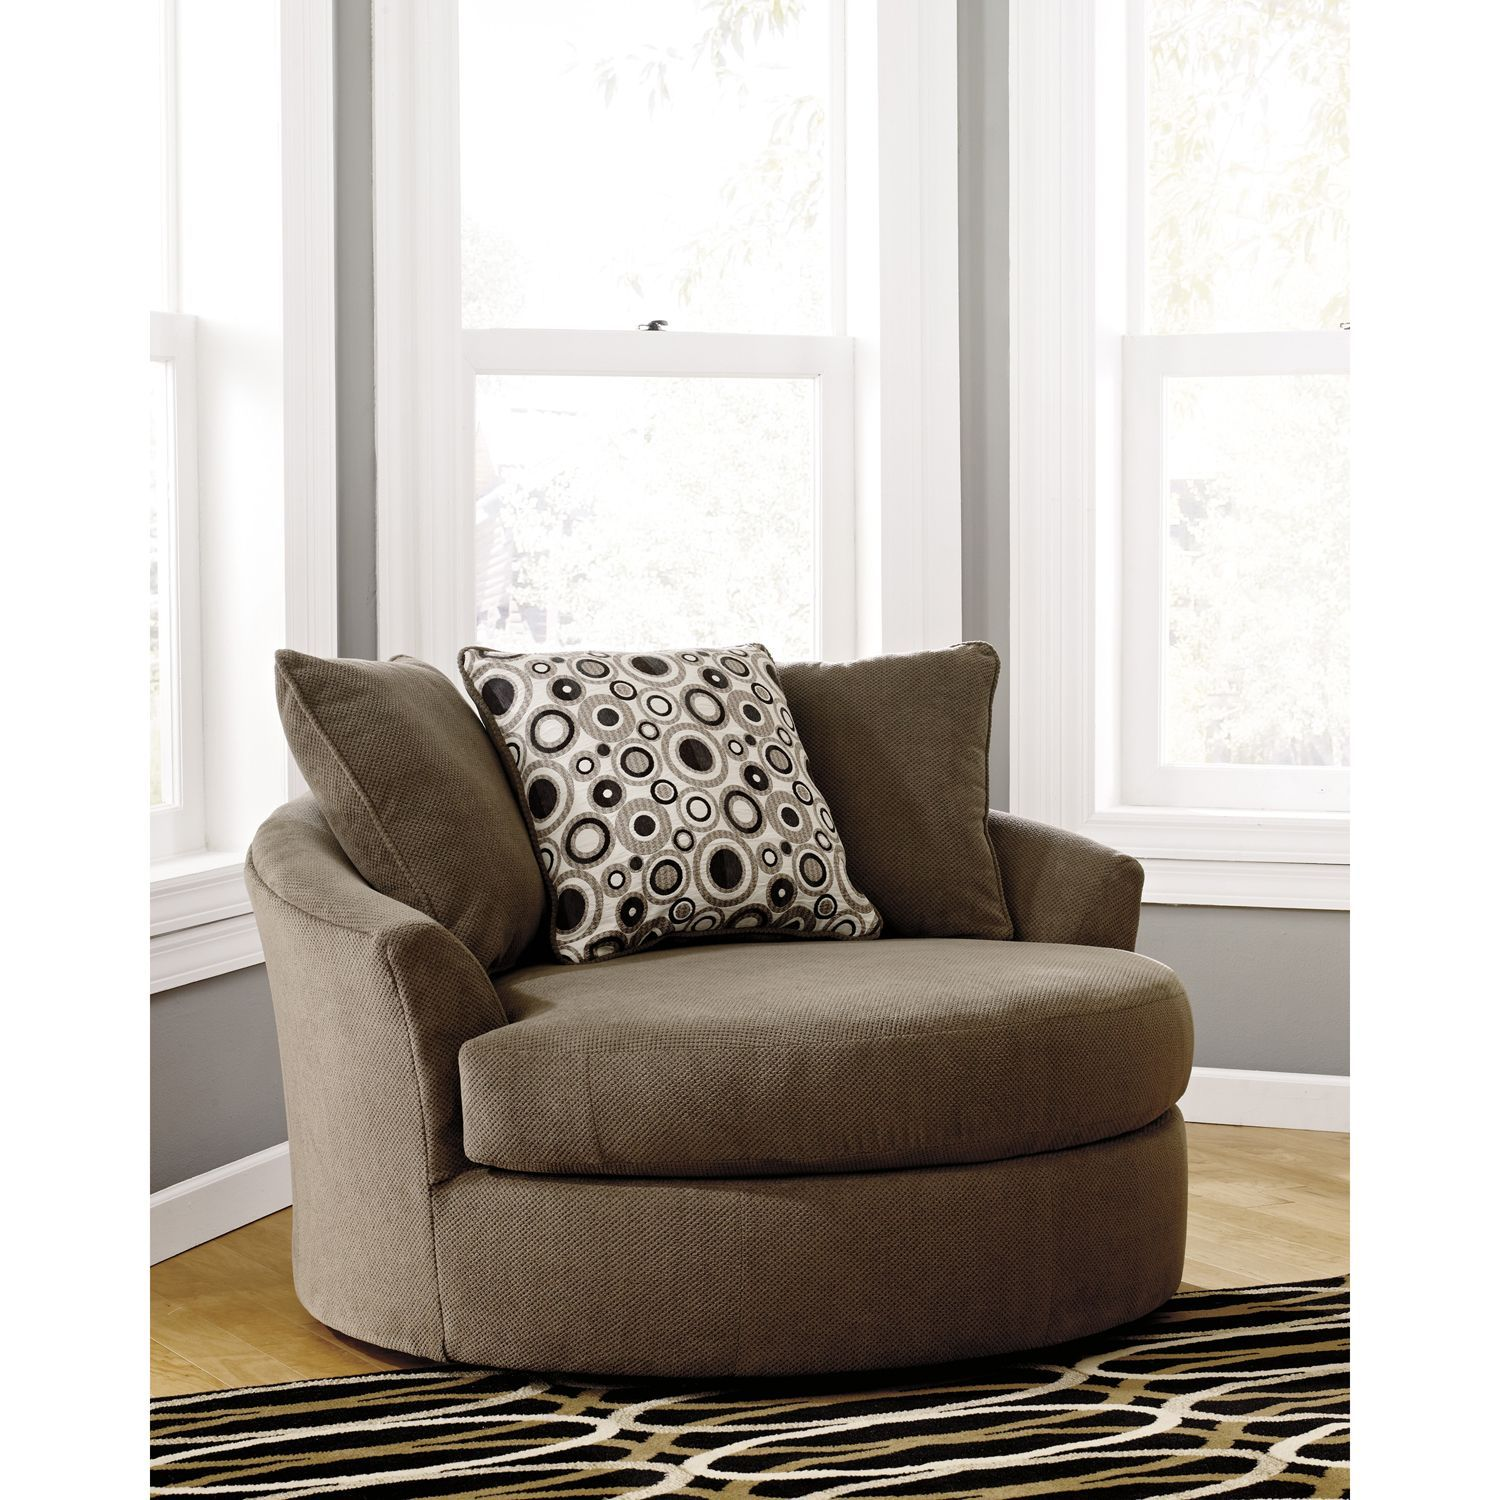 Oversized Swivel Chairs For Living Room Irest Massage Chair Roenik Accent Sitting Area